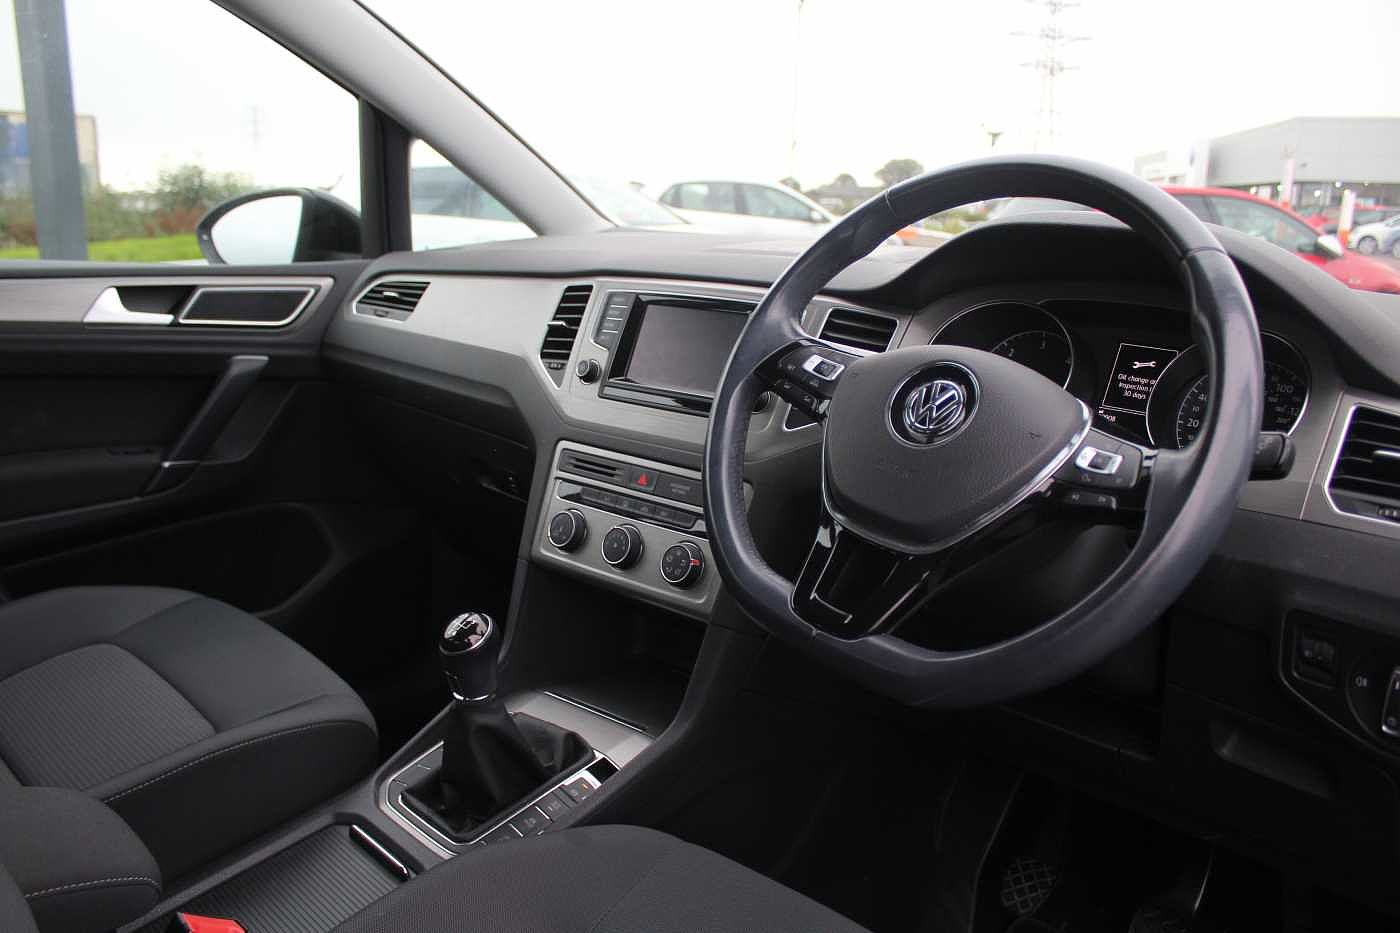 Volkswagen Golf SV Images